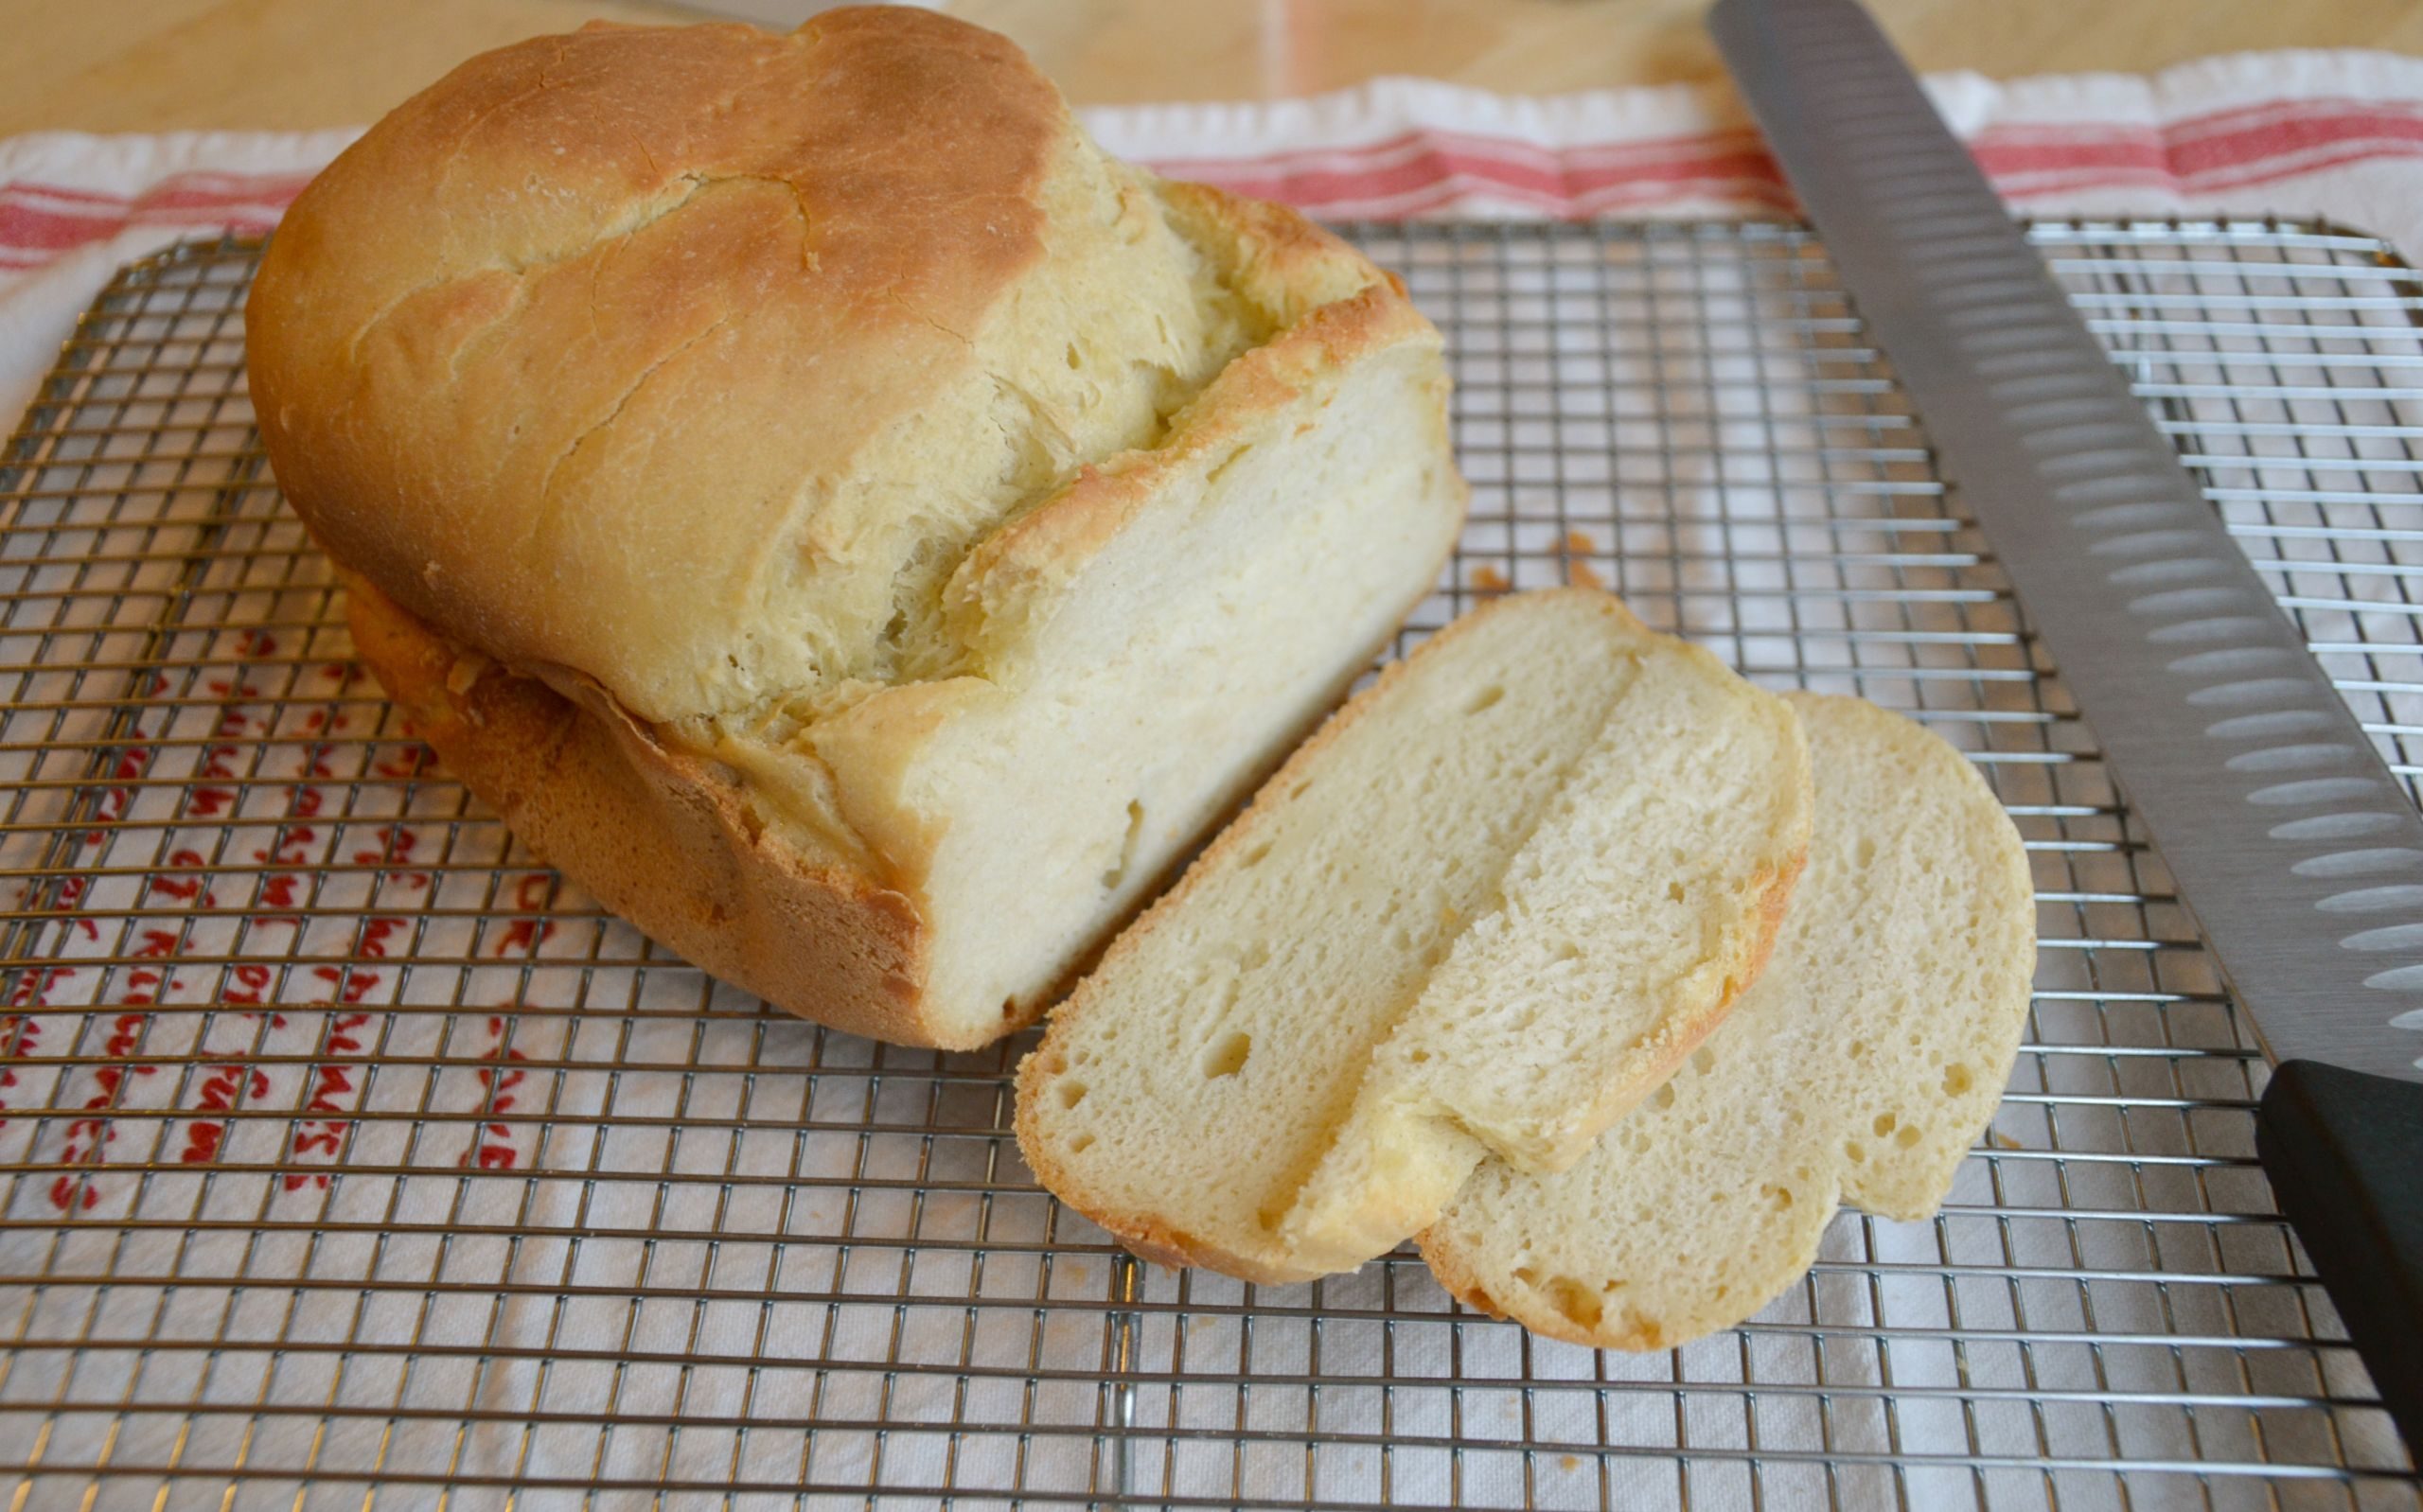 Gluten Free Bread Recipe Breadmaker  gluten free bread machine recipe